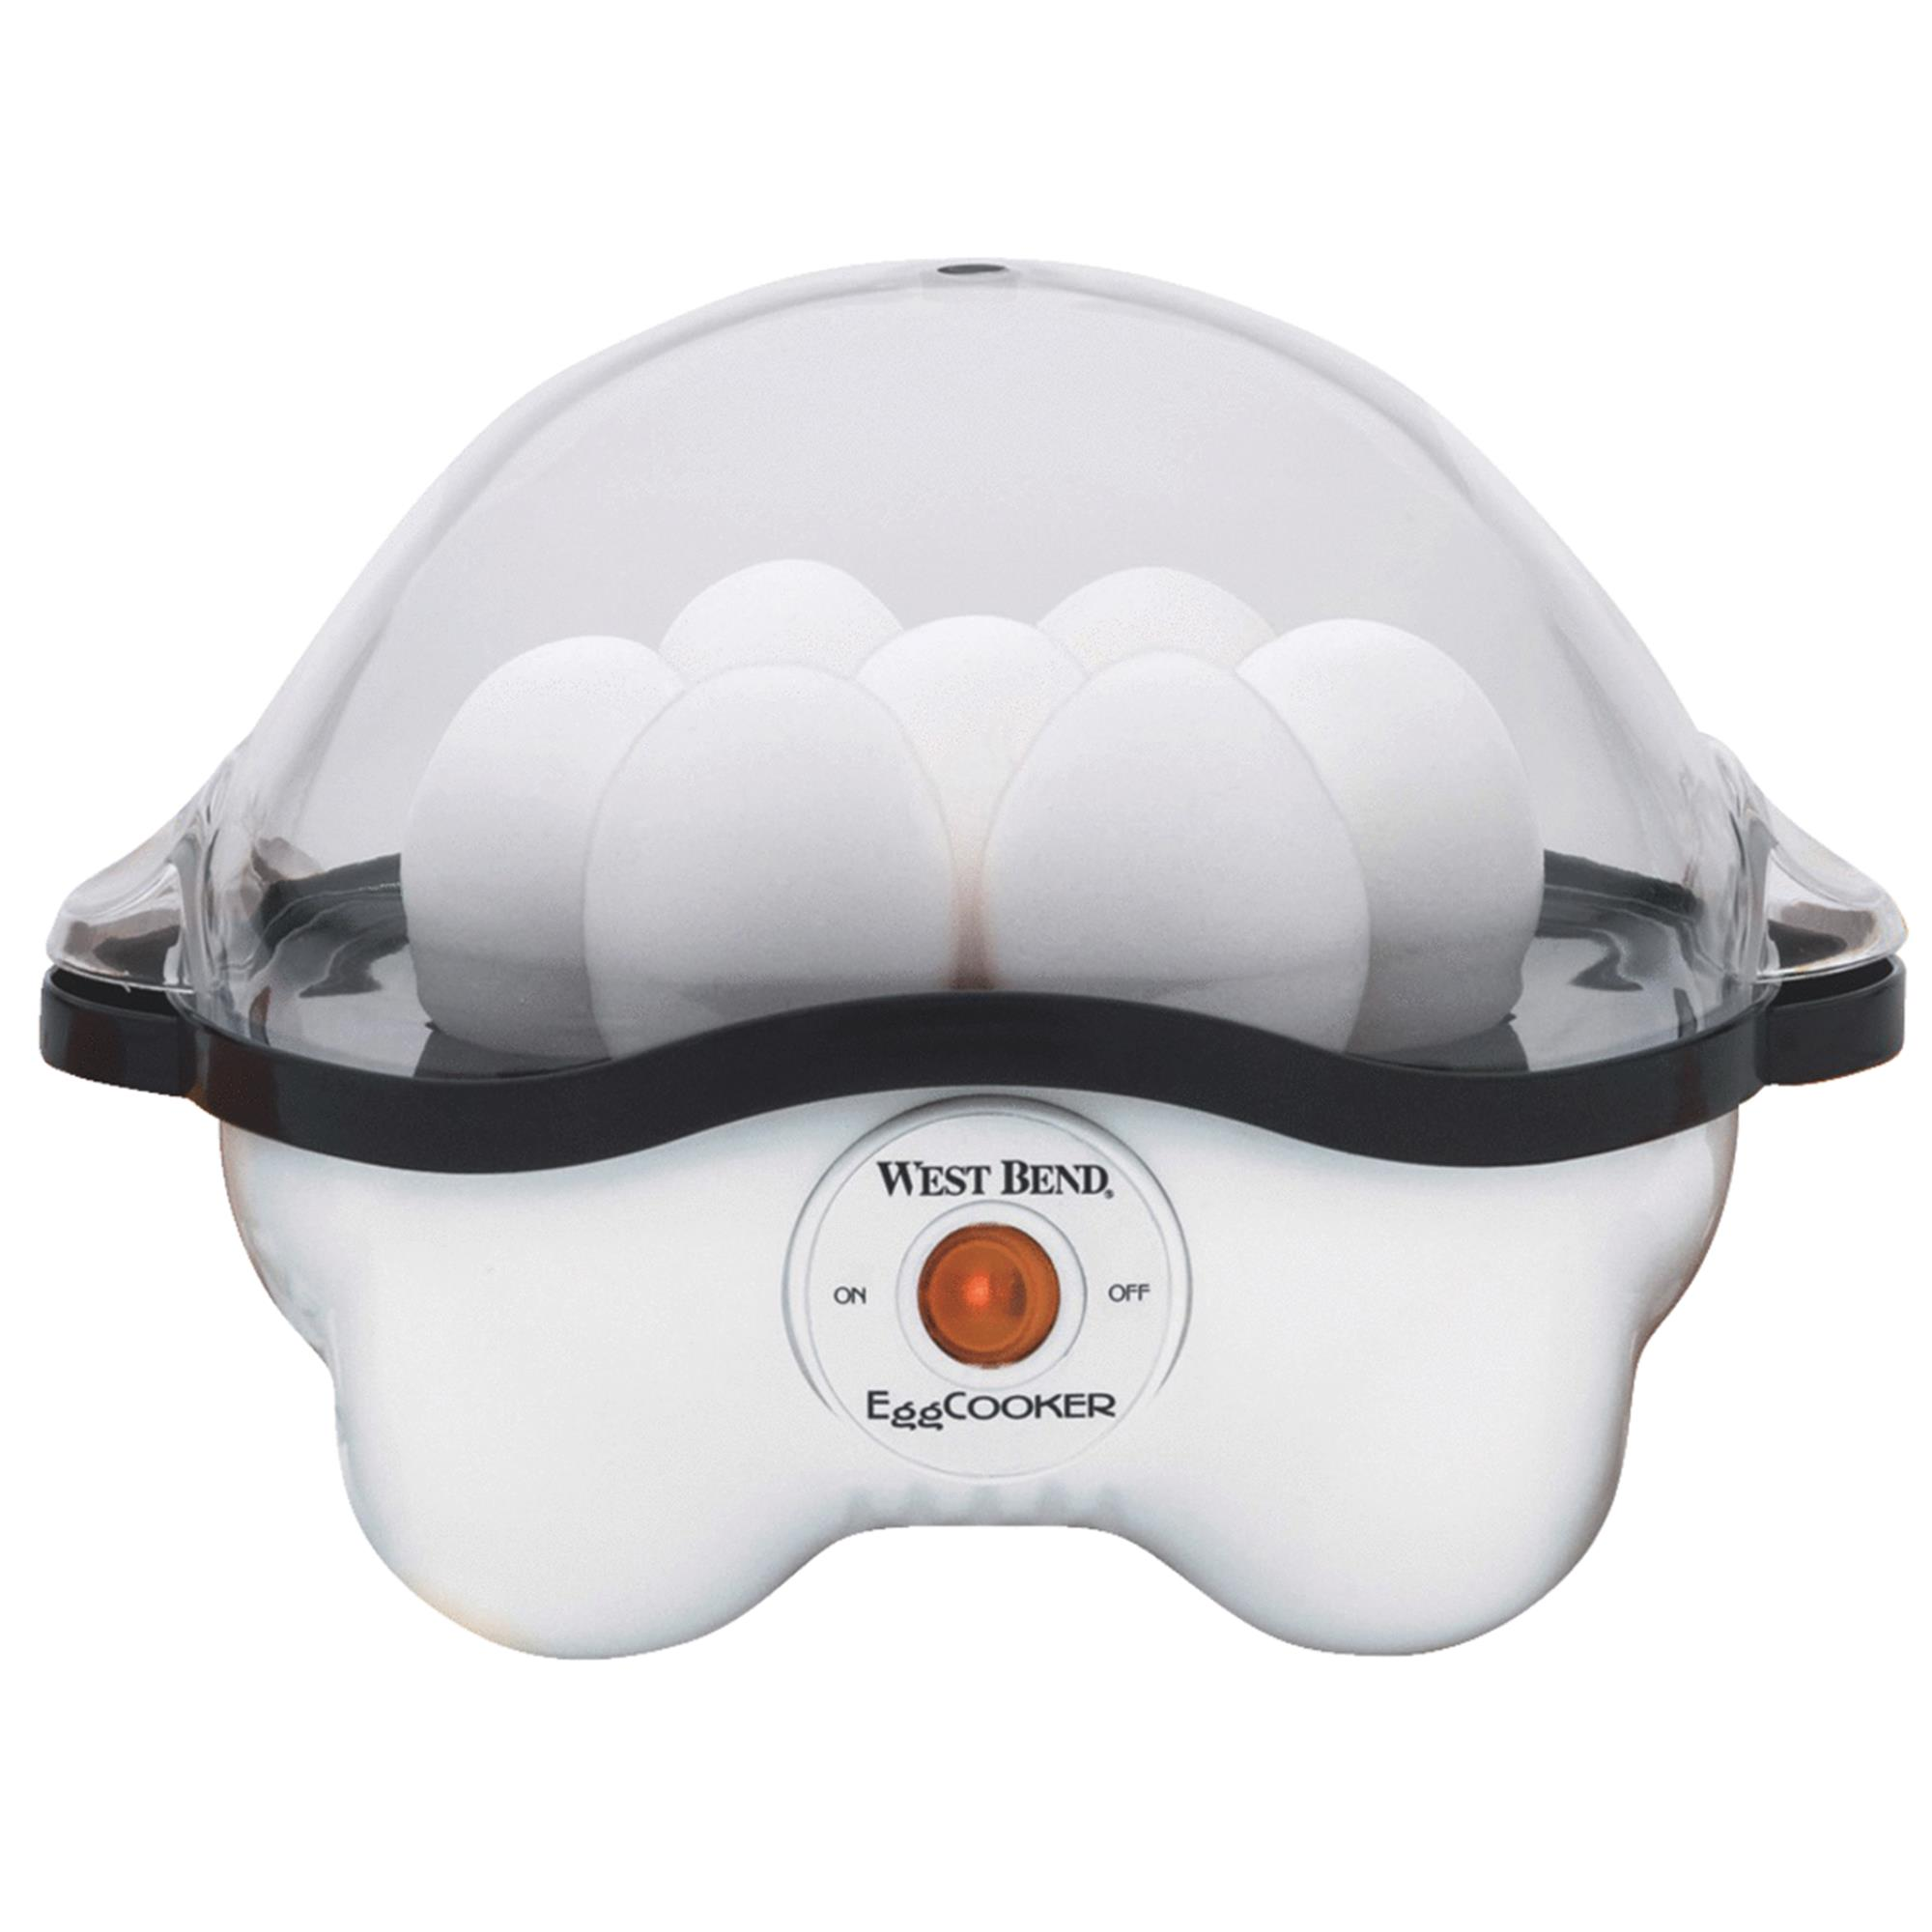 West Bend Electric Egg Cooker